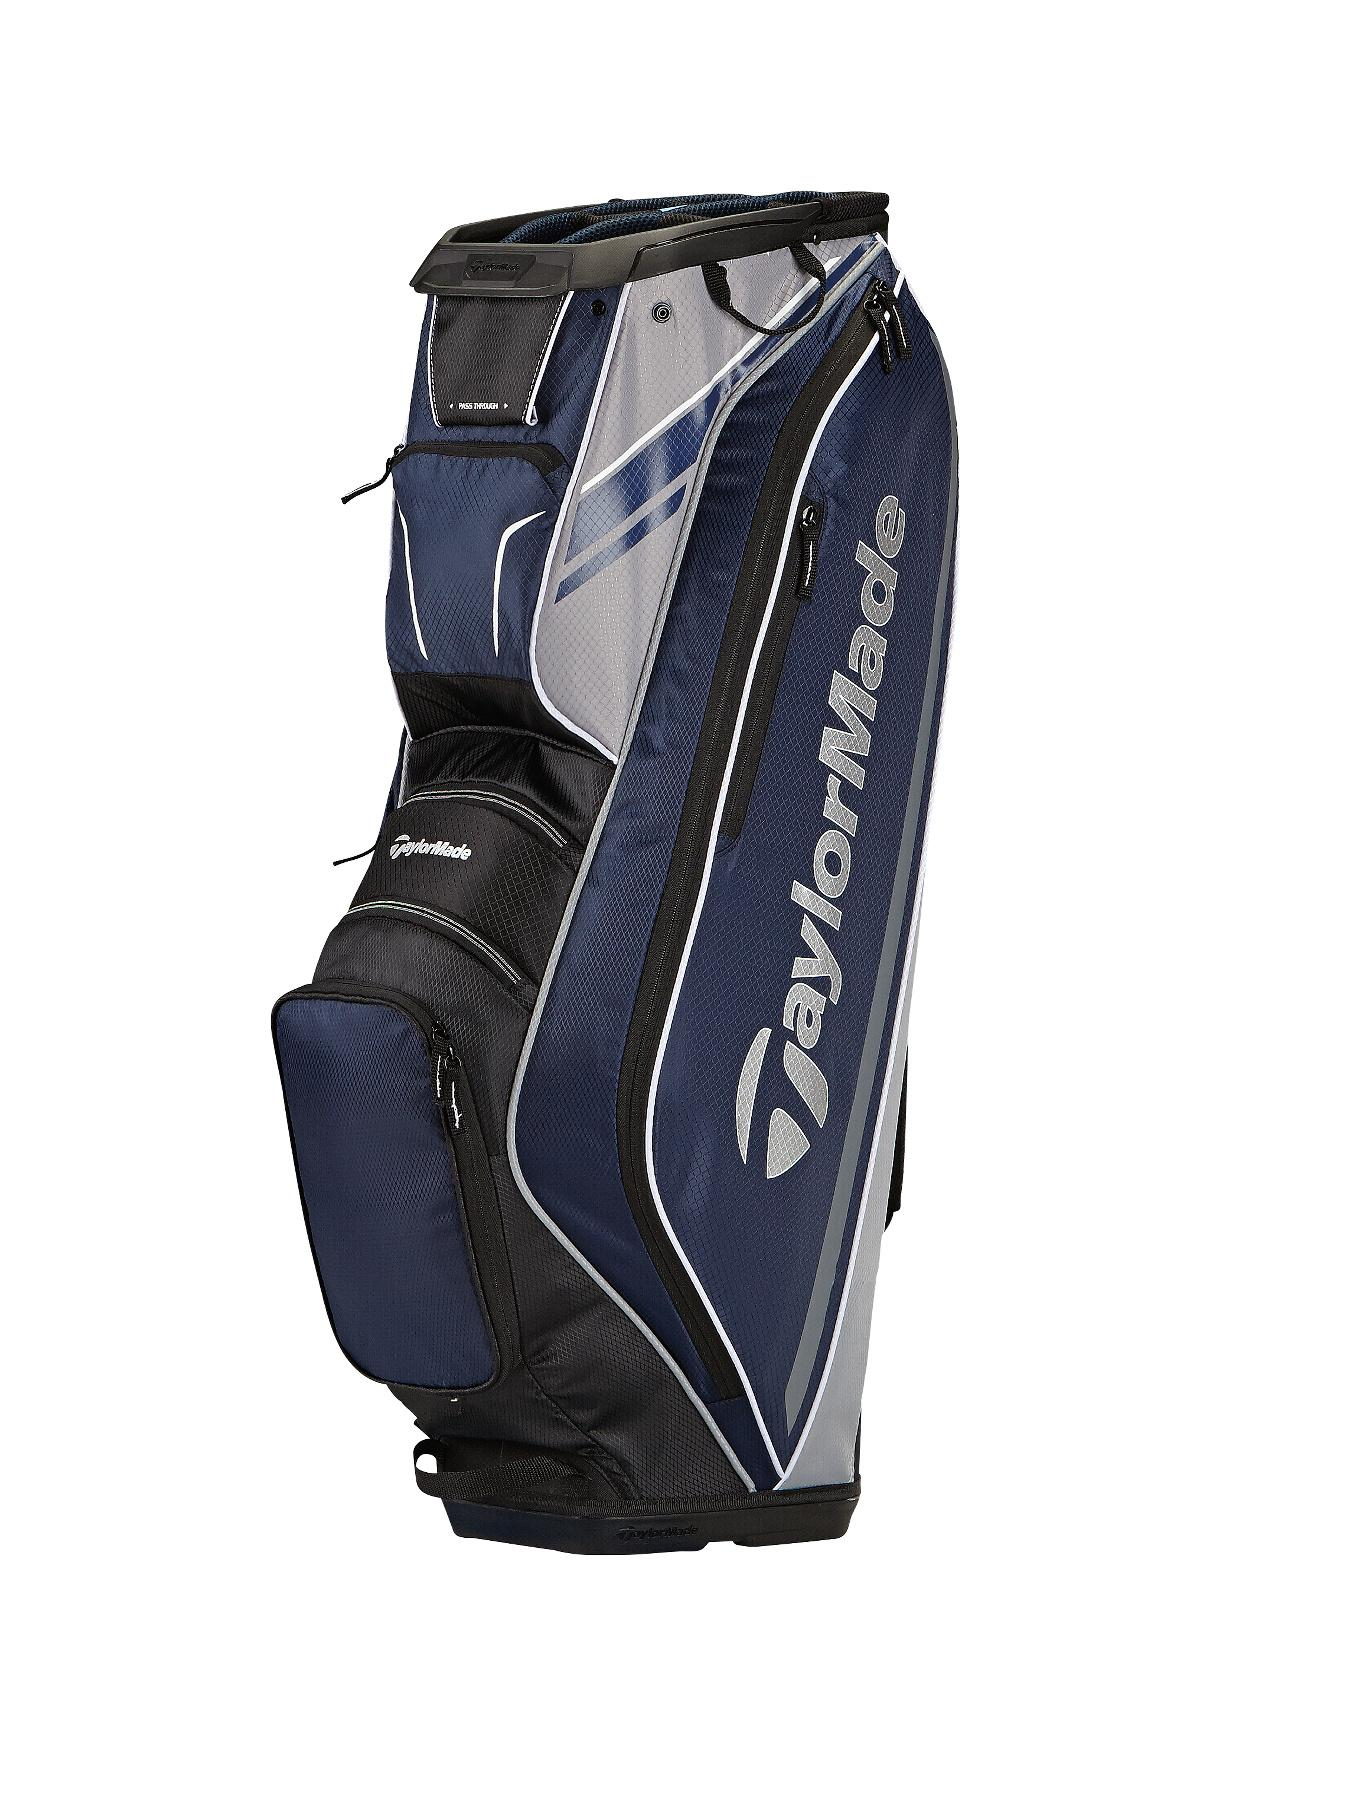 TAYLORMADE 2015 San Clemente Cart Bag - Navy/Black/Silver